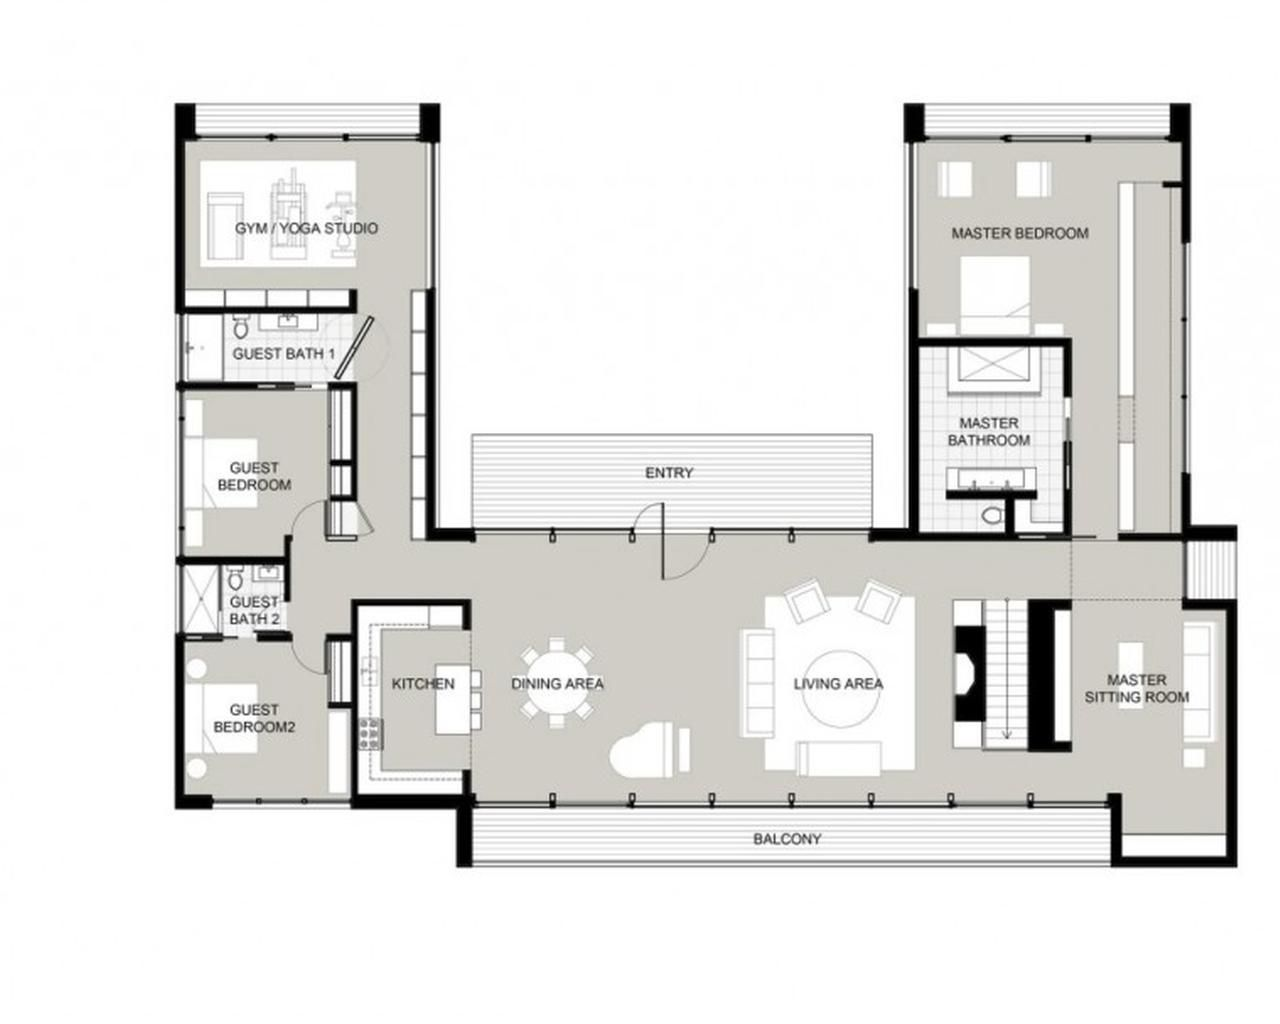 U Shaped Kitchen Floor Plans u-shaped house plans with courtyard … | pinteres…